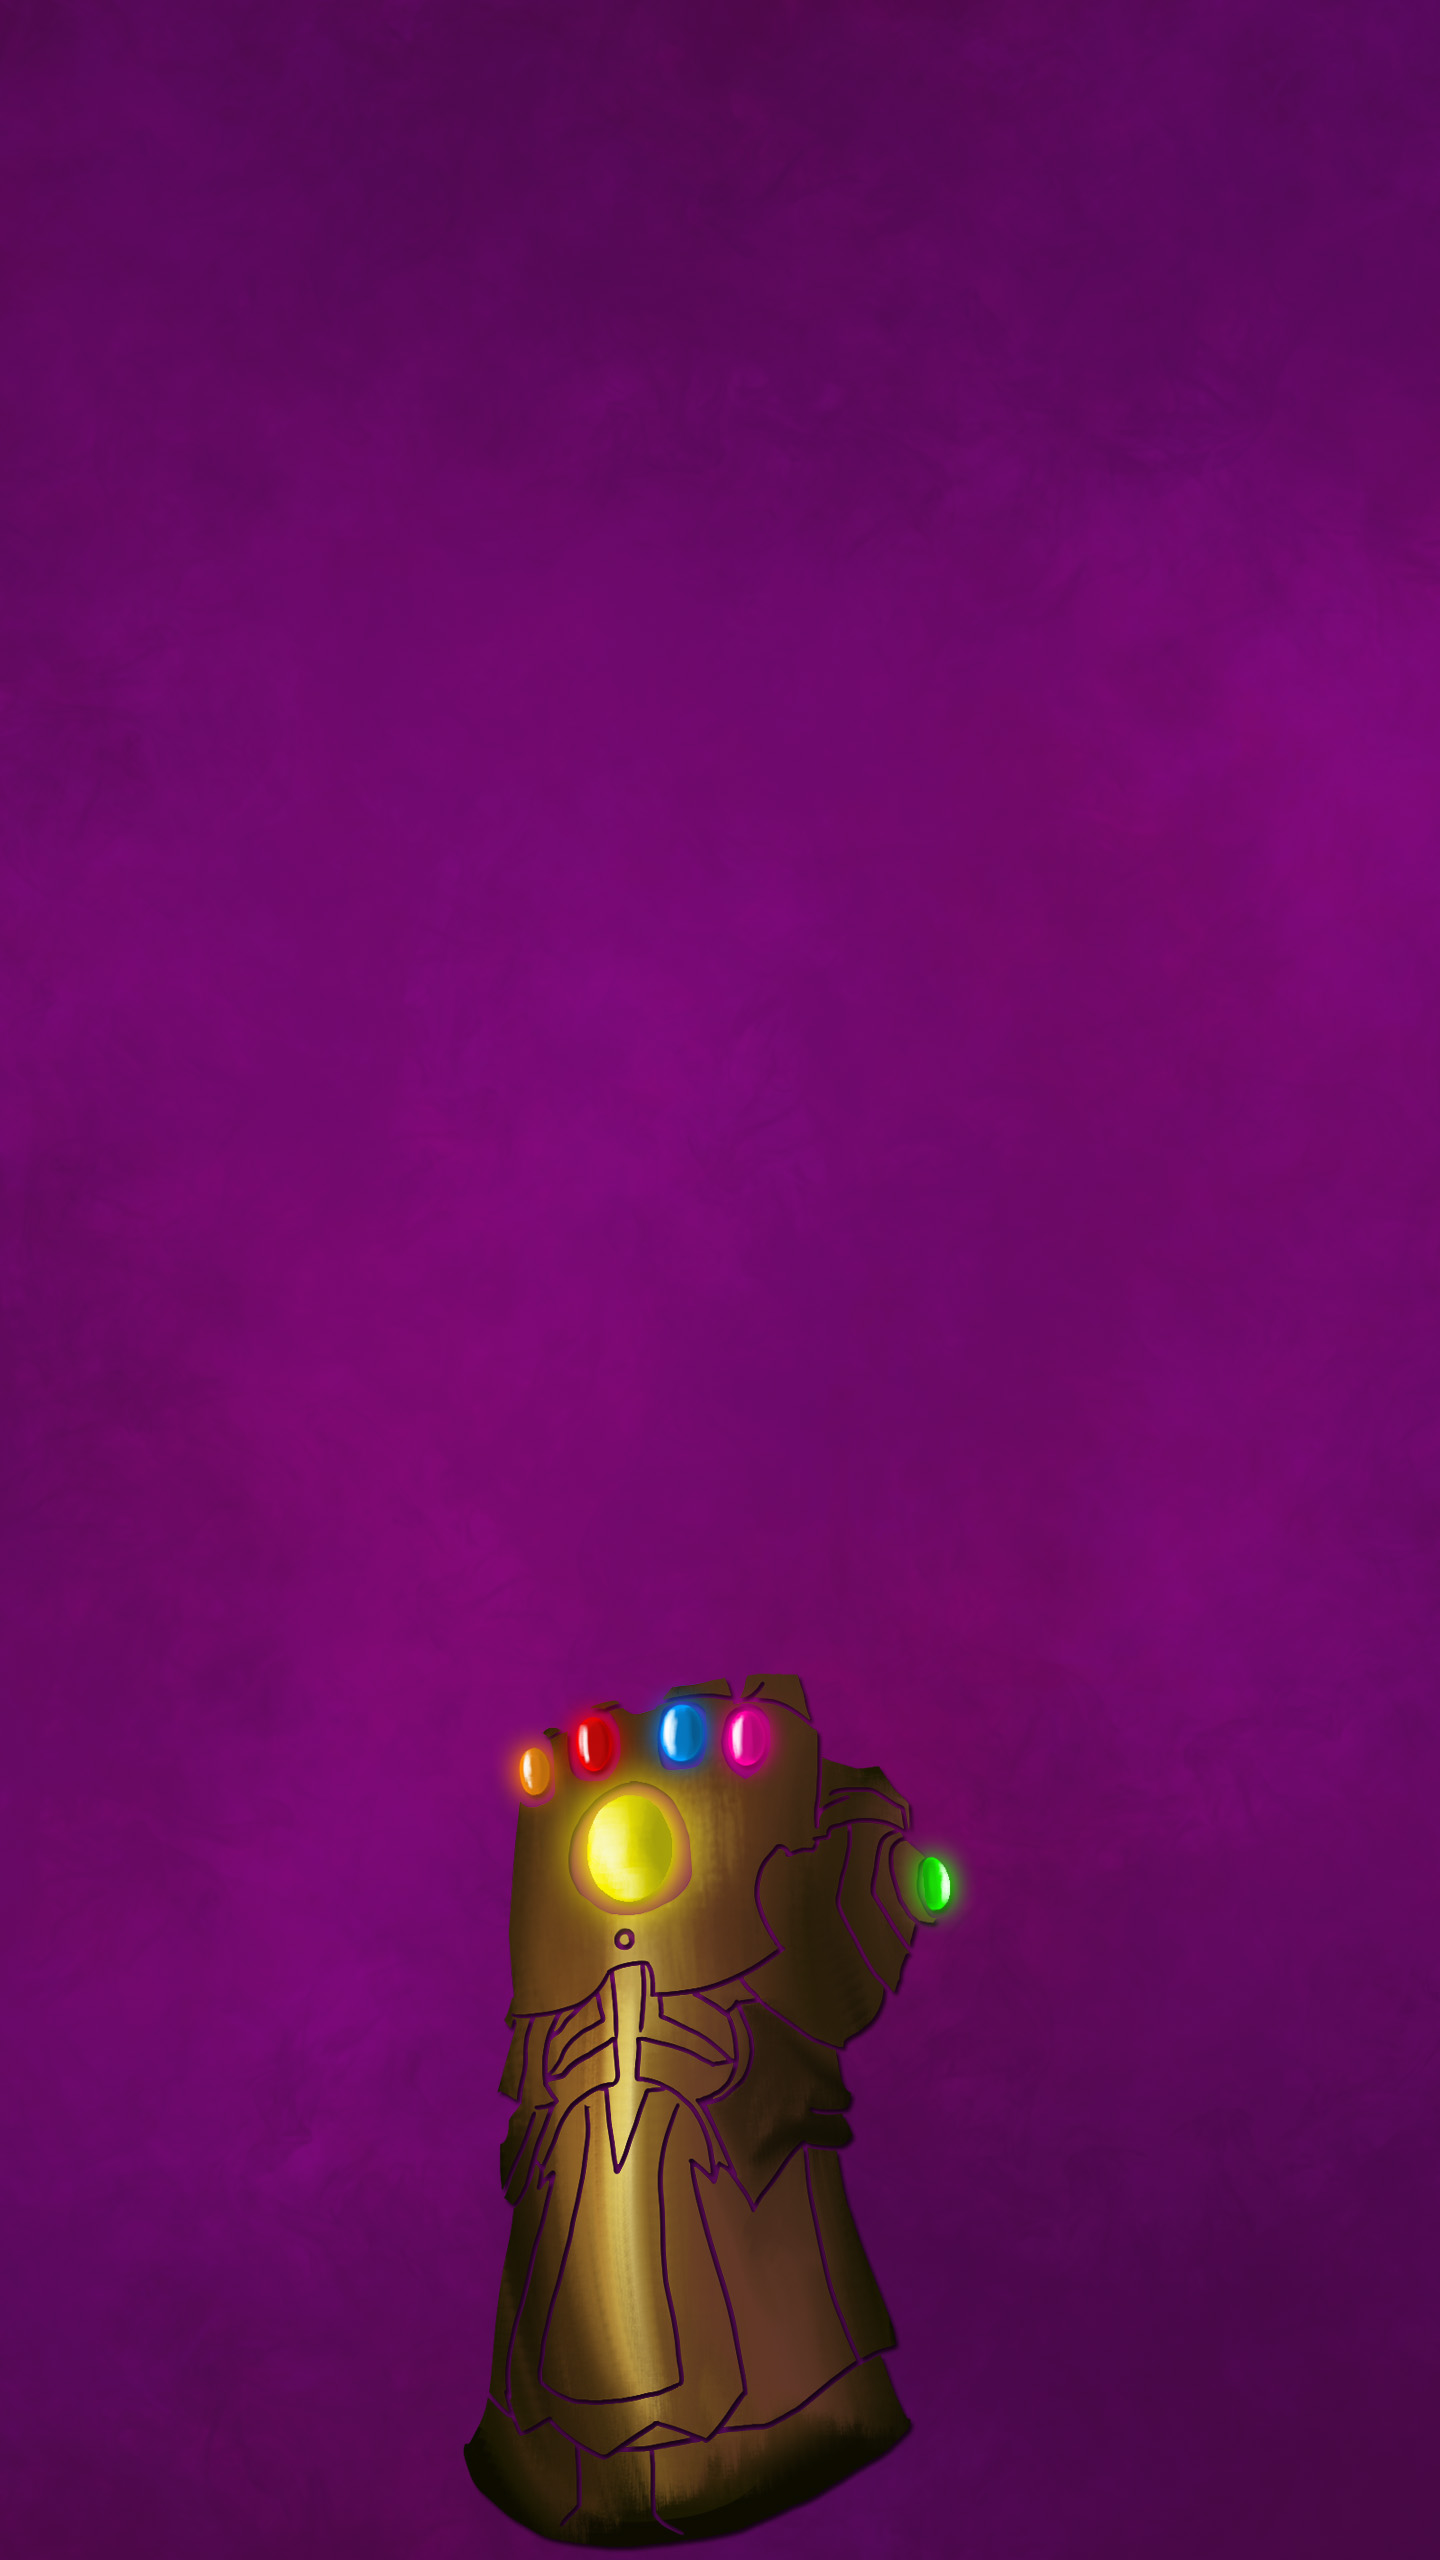 Thanos Infinity Glove iPhone Wallpaper